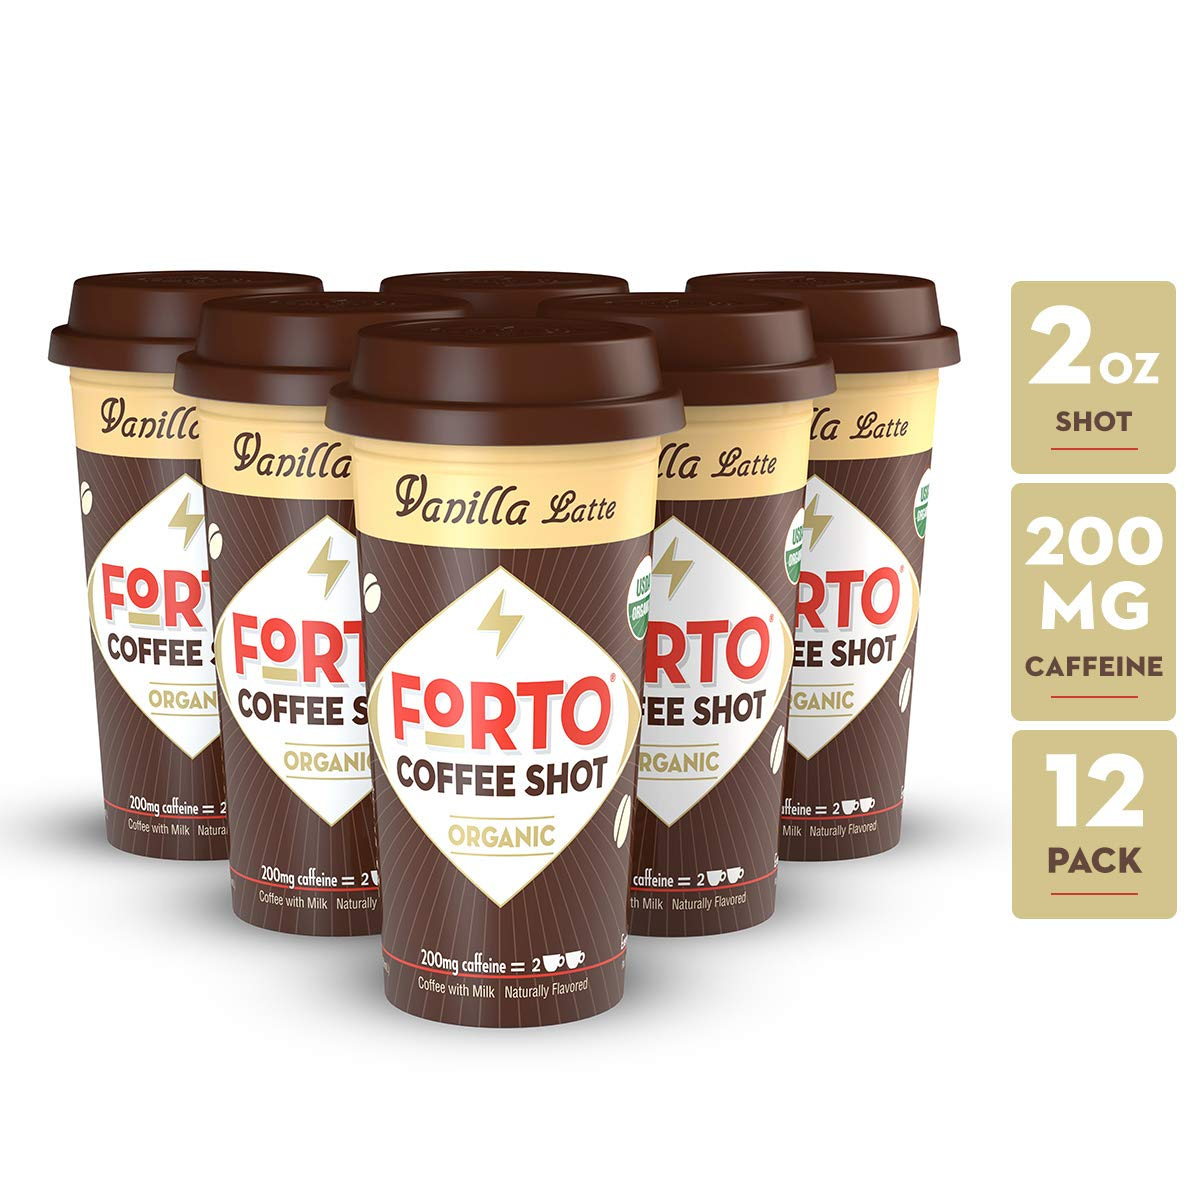 FORTO Coffee Shots - 200mg Caffeine, Vanilla Latte, Ready-to-Drink on the go, Cold Brew Coffee Shot - Fast Coffee Energy Boost, 12 Pack by FORTO